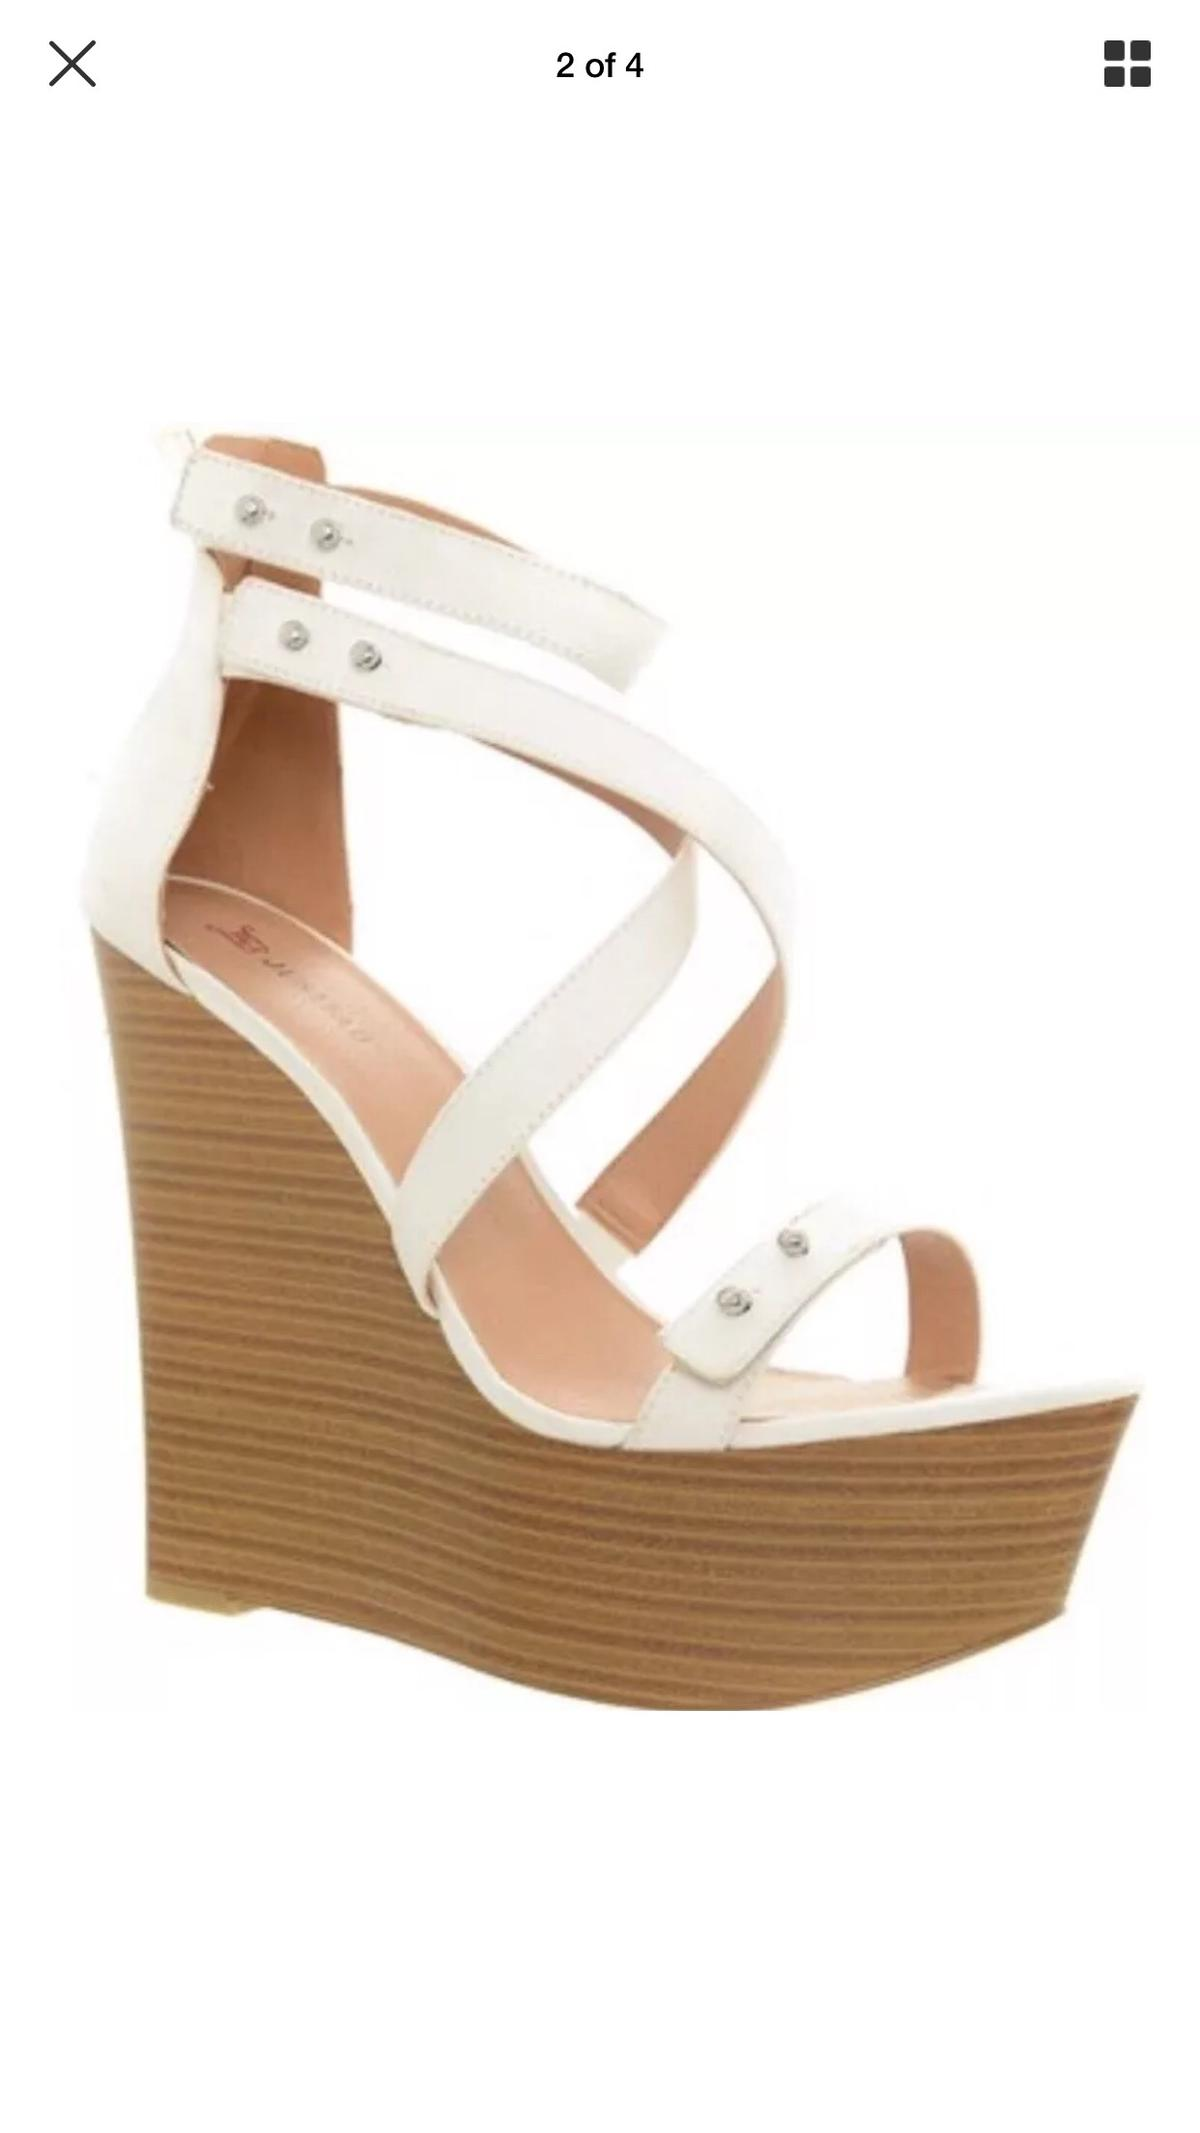 11a22d3922 JUSTFAB Clarysa platform White Sandals SIZE 8 in DG12 Annan for ...